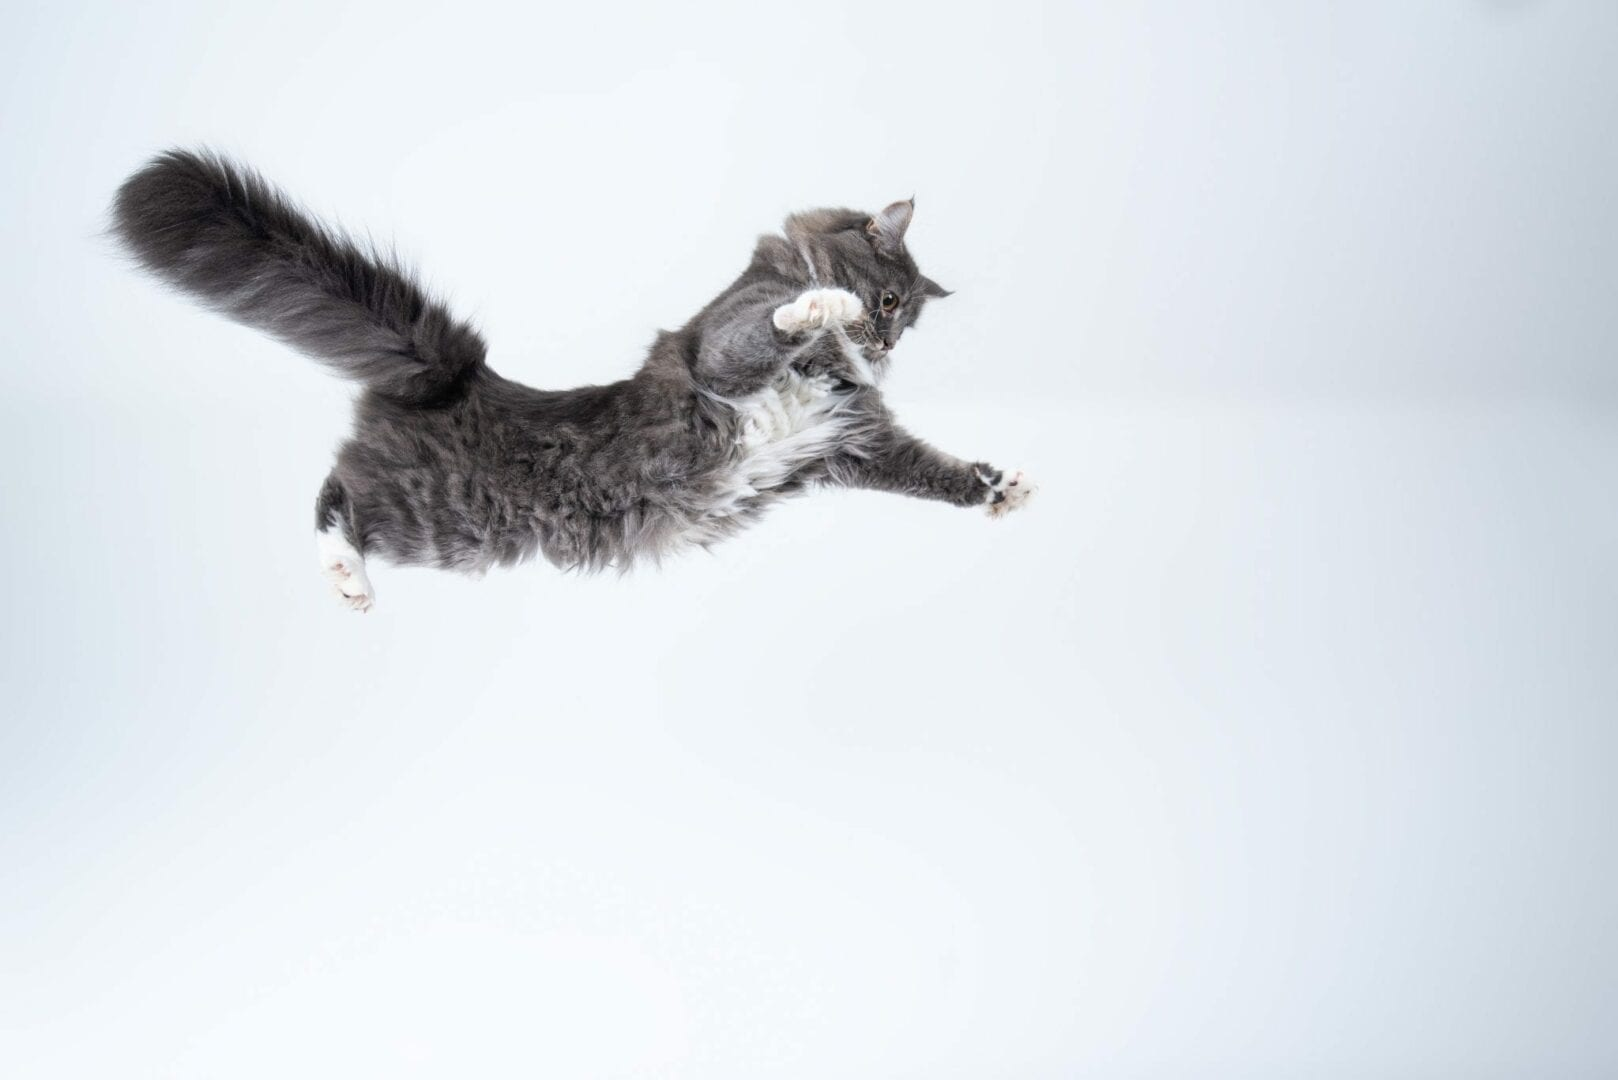 cats always land on their feet